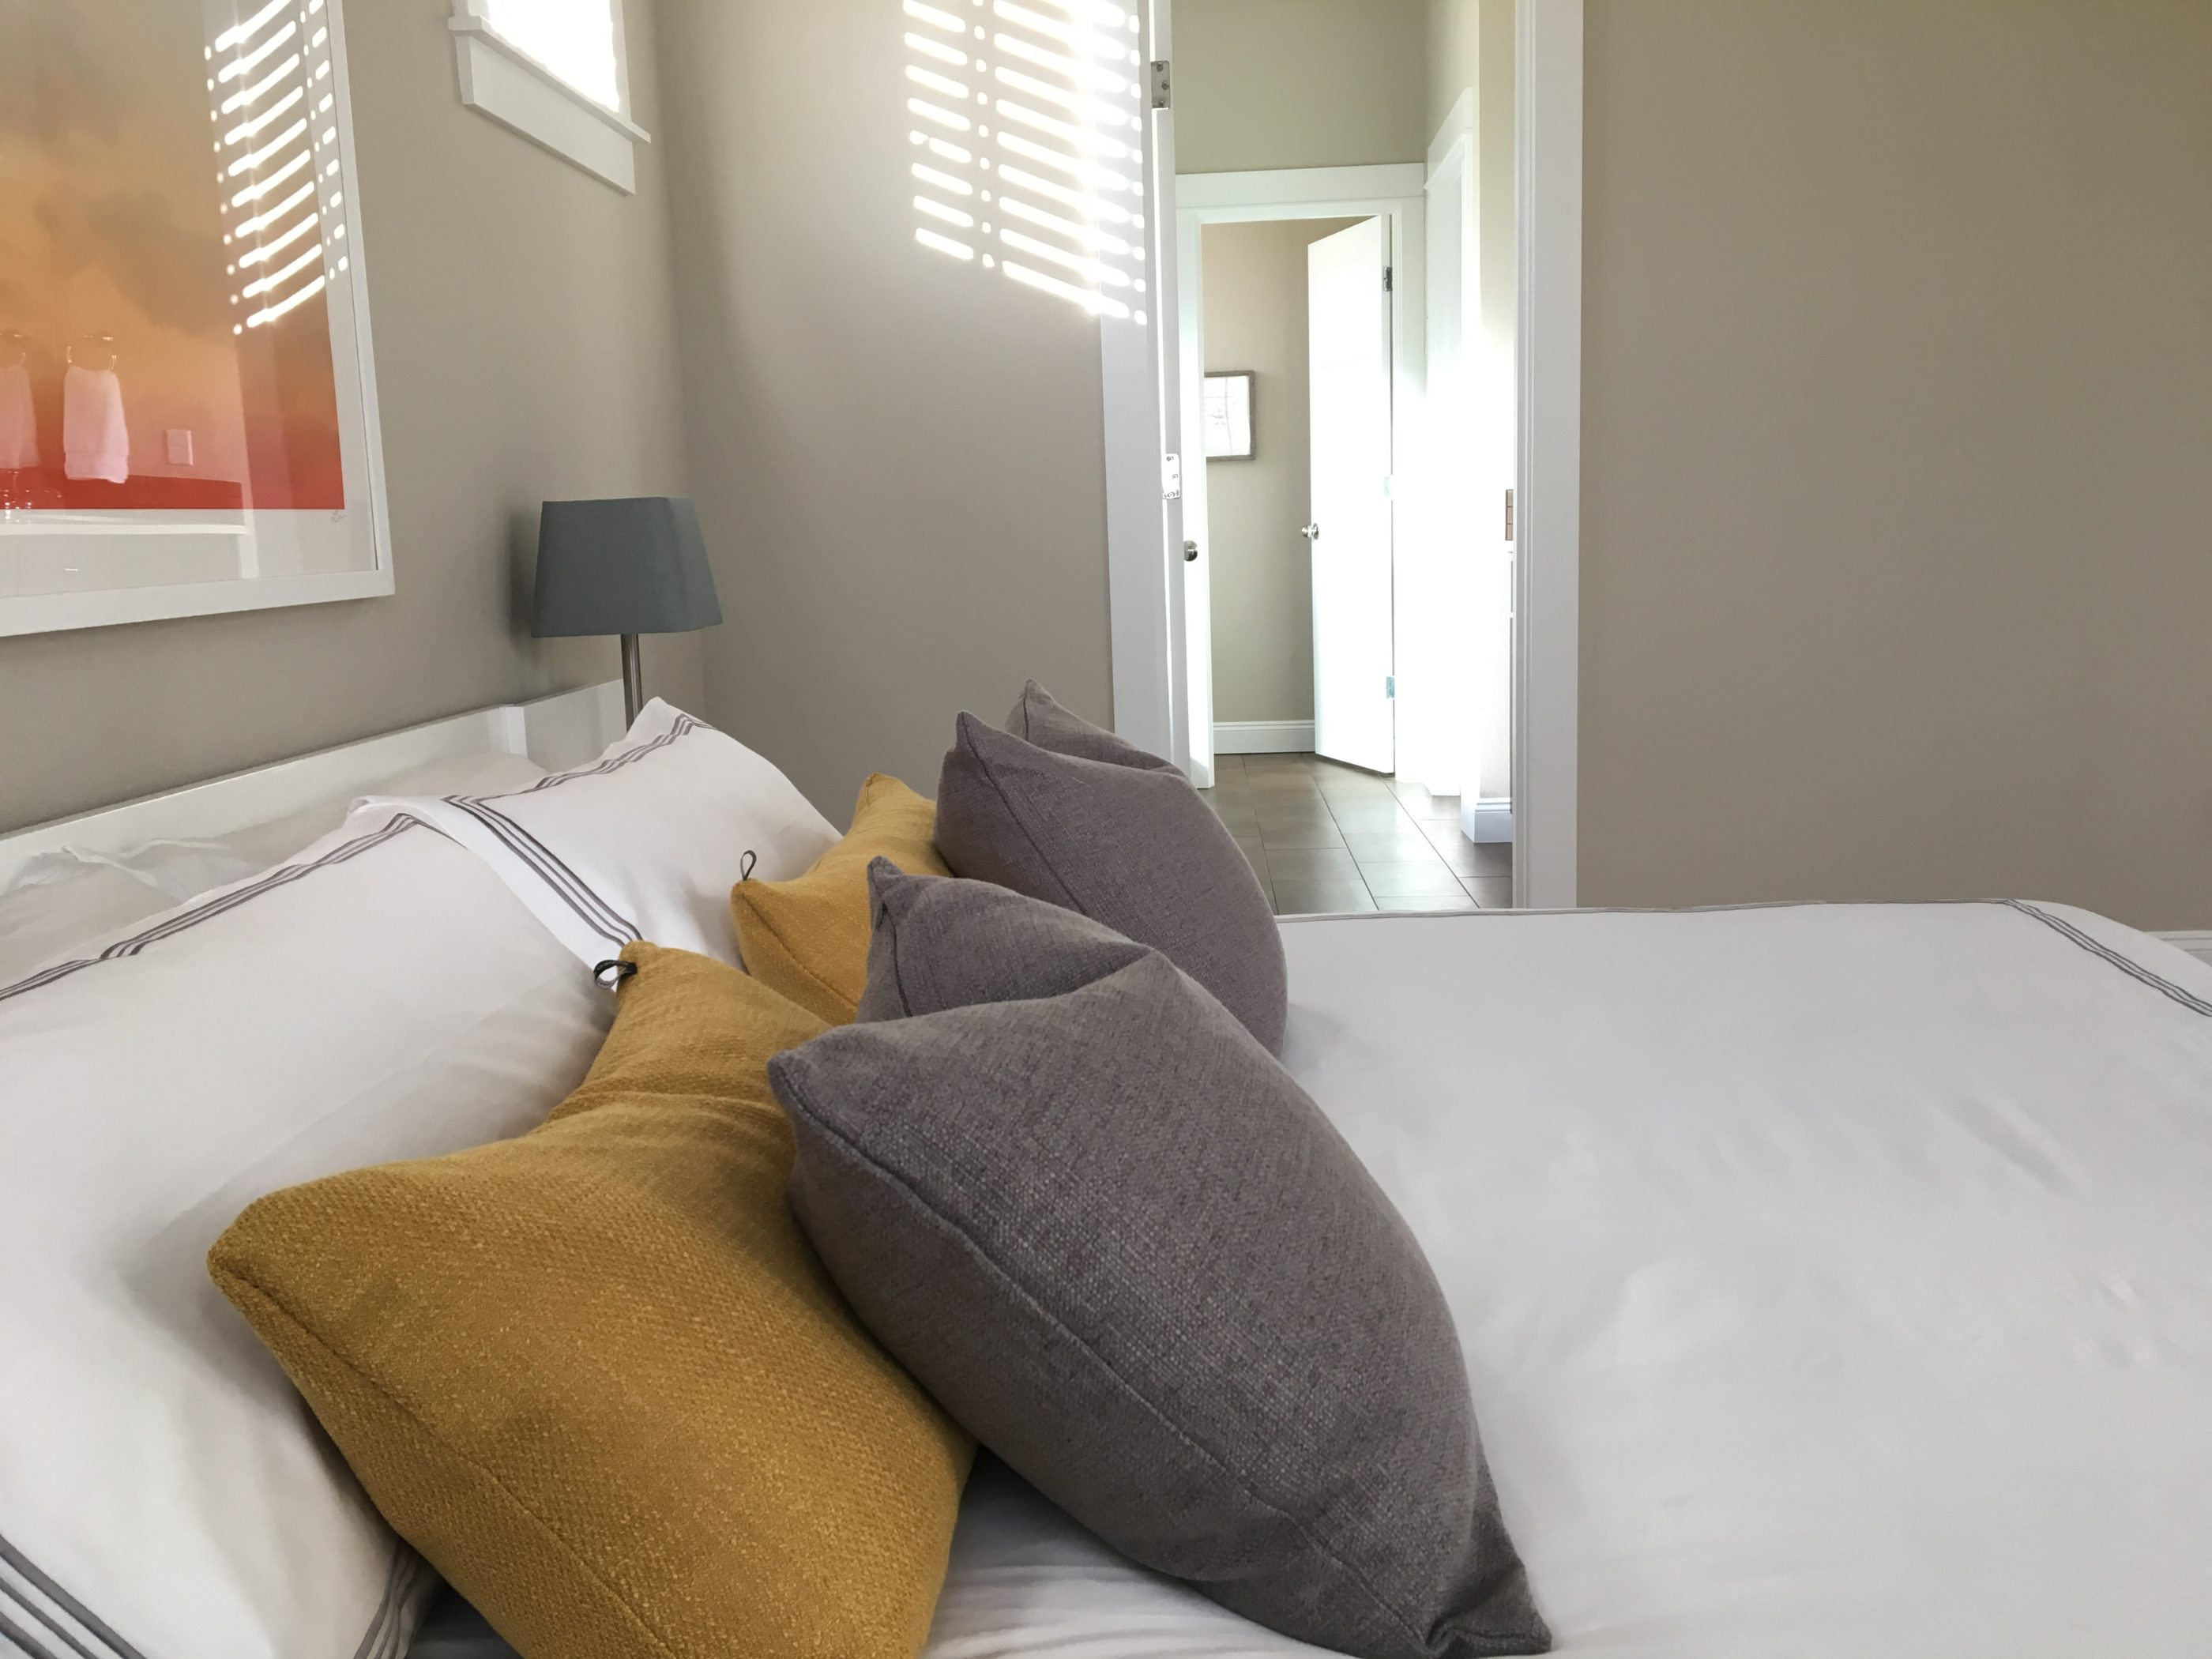 mASTER bedroom design with yellow and gray pillows